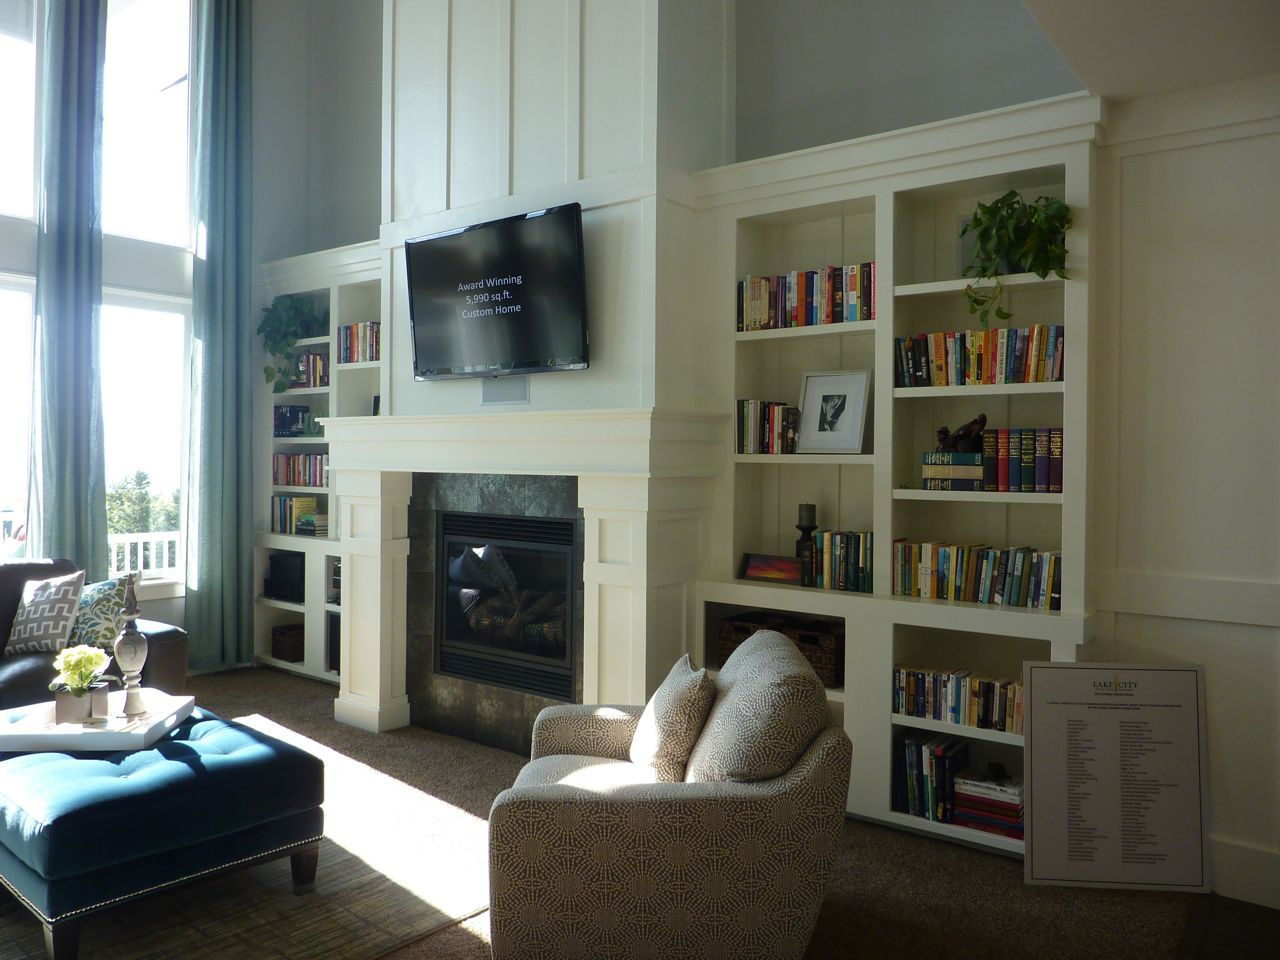 Fireplace fir 2 story great room. No tv above. Needs more ...